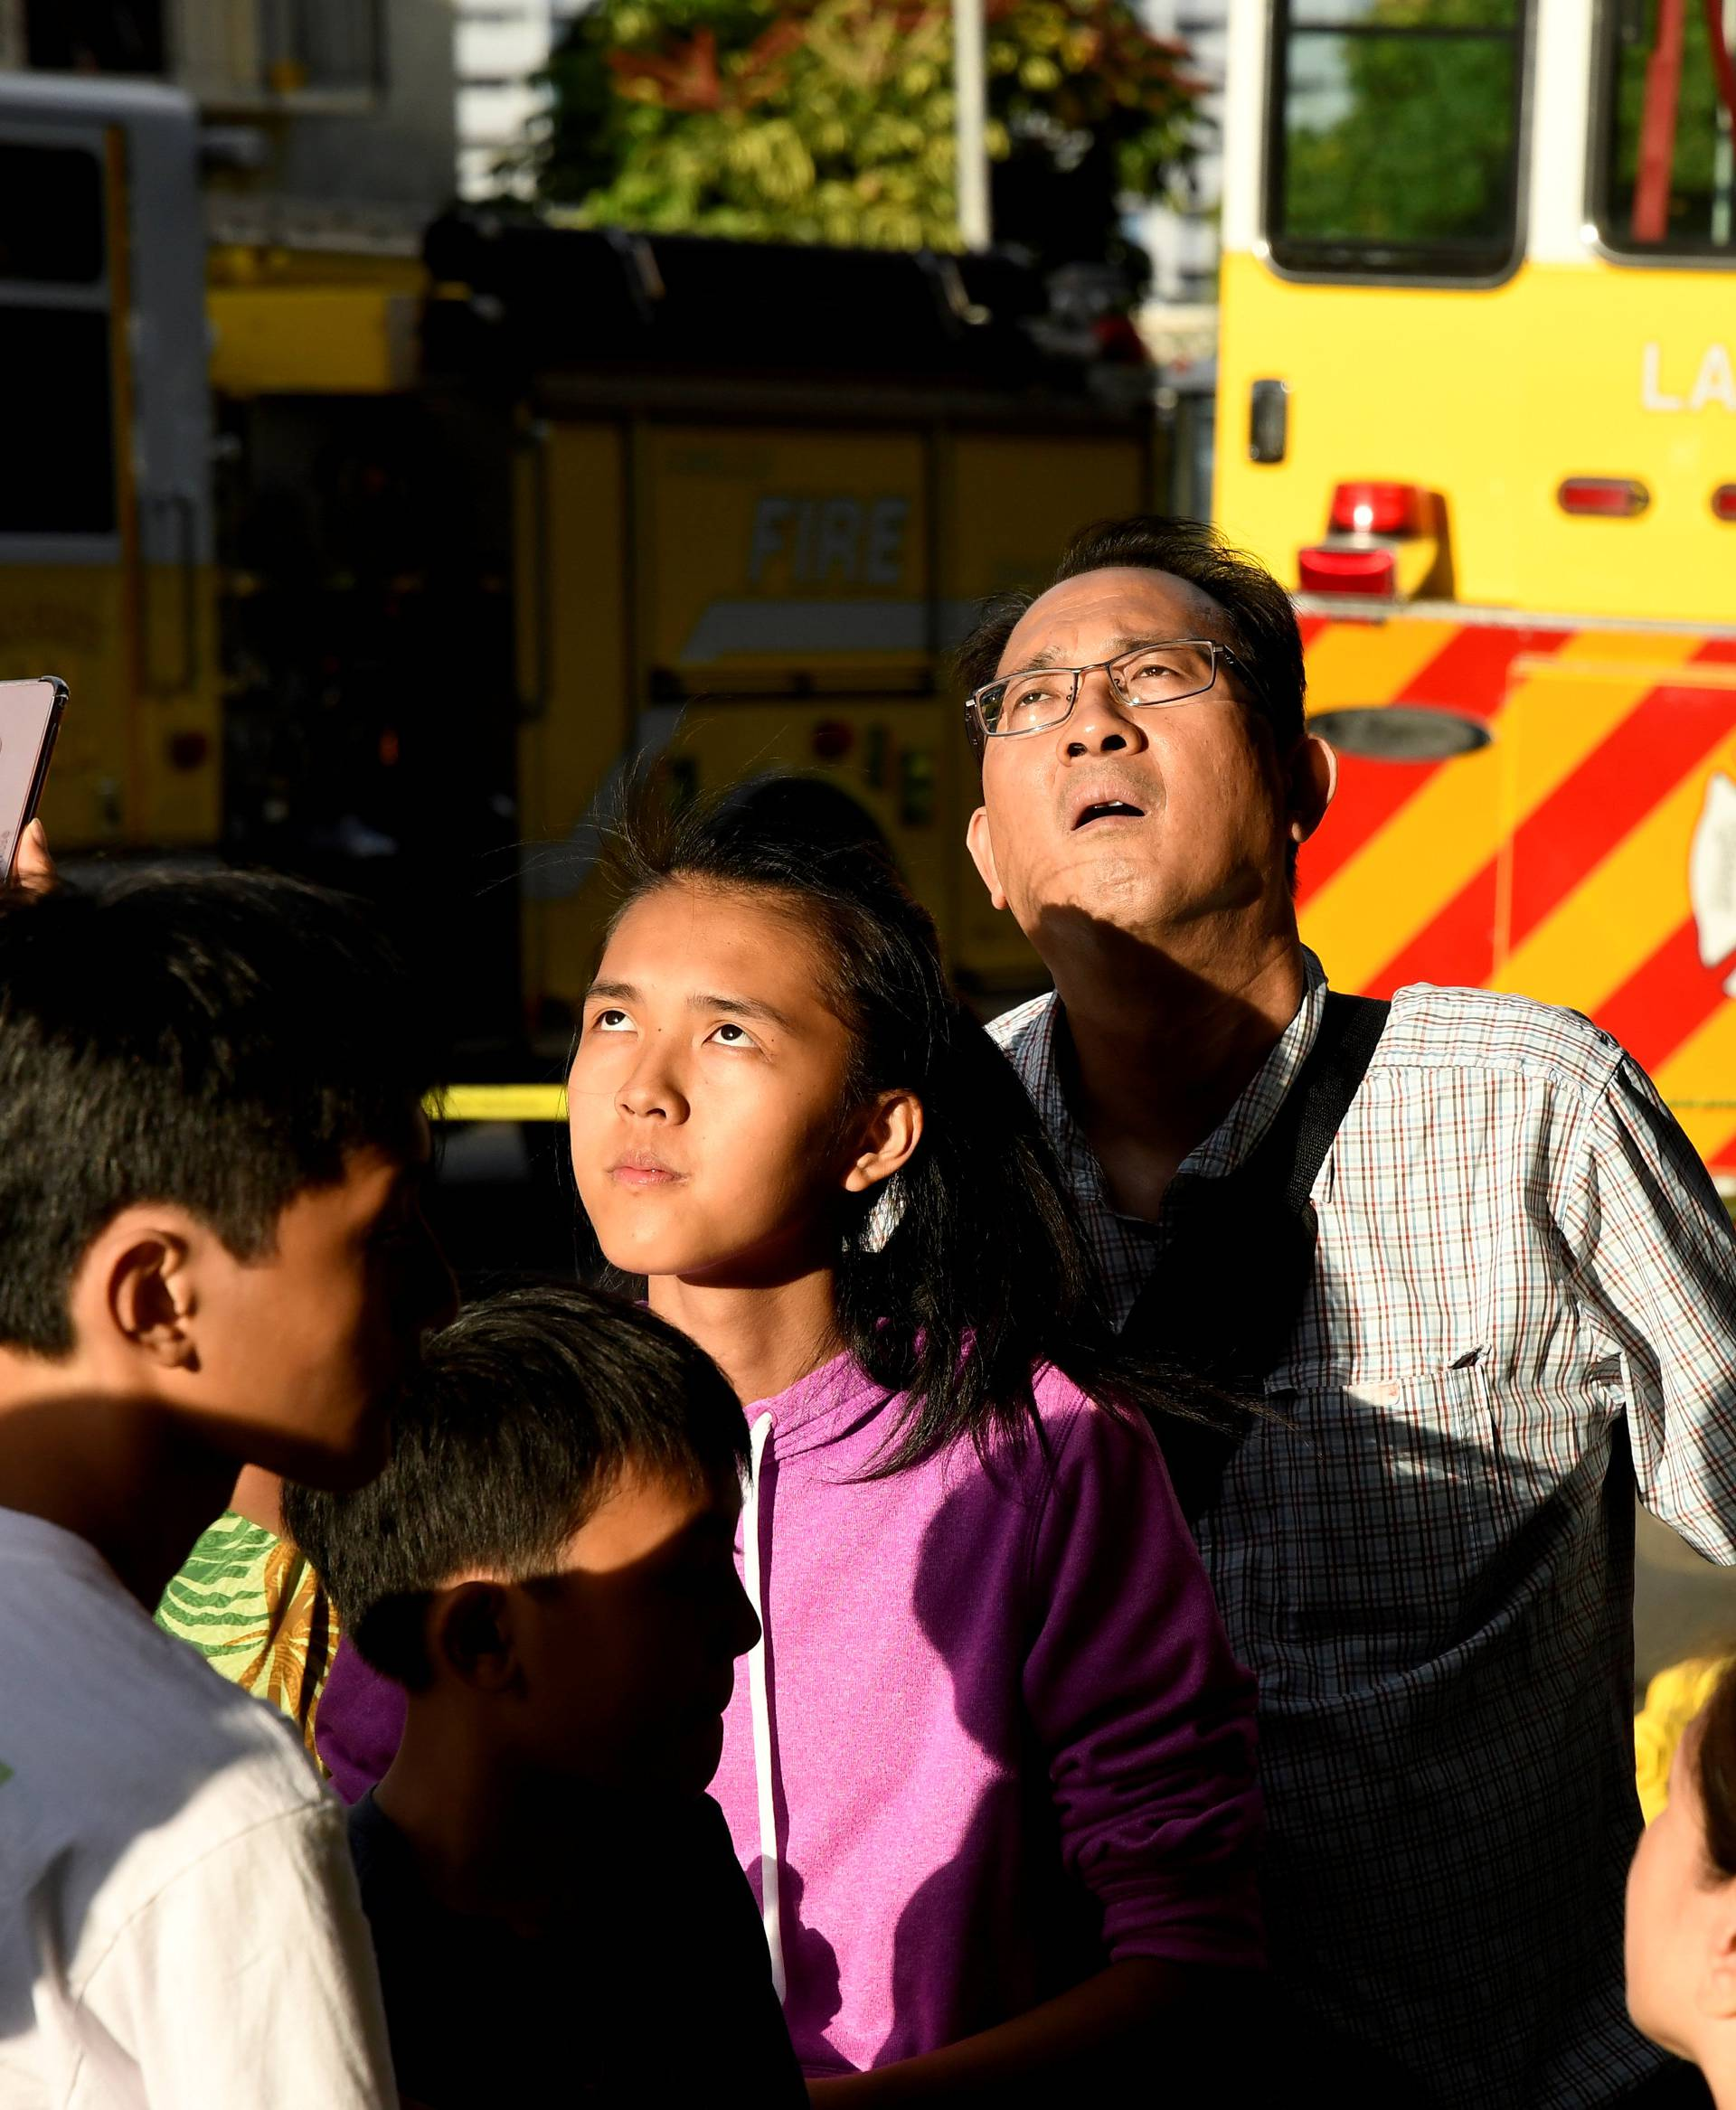 Evacuated residents look up at Marco Polo apartment building after a fire broke out in it in Honolulu, Hawaii.